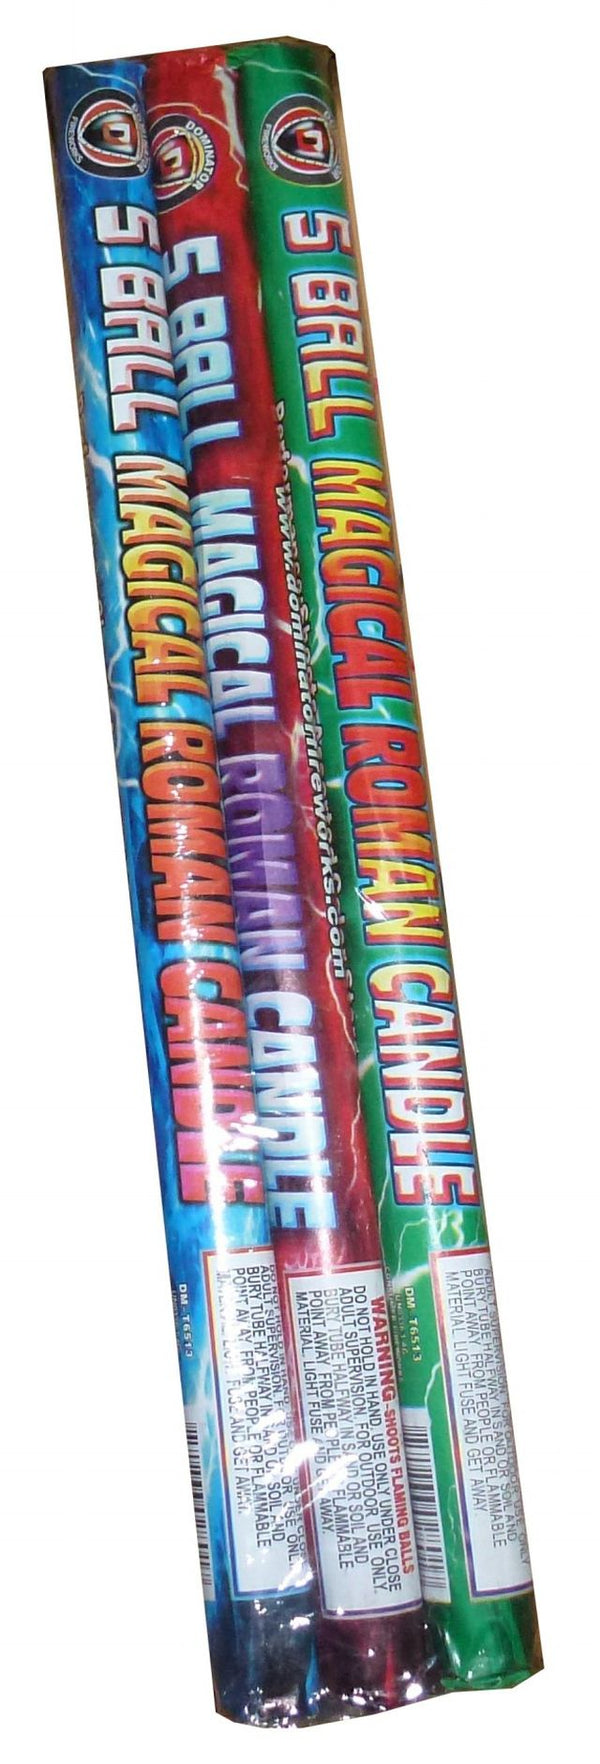 5 Ball Magical Roman Candle (96/3) - Jeff's Fireworks